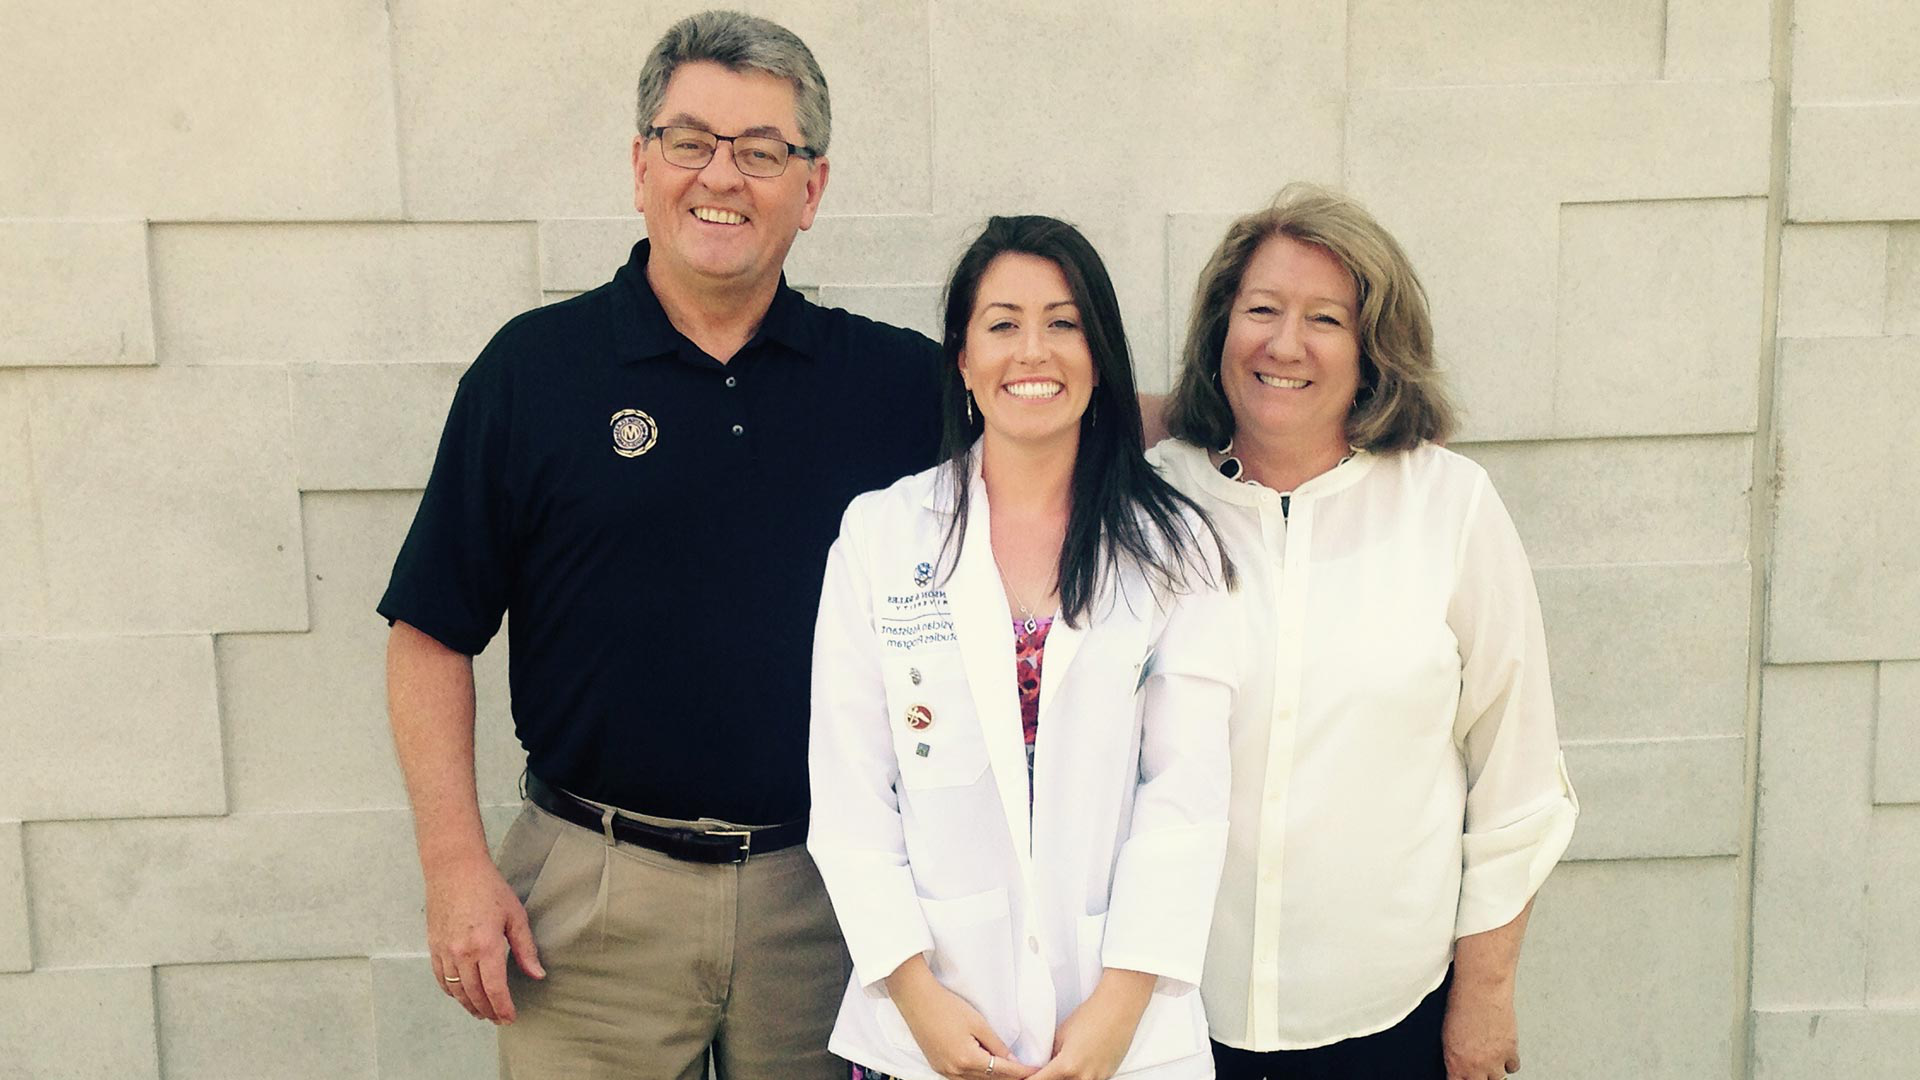 Heisler with parents at the White Coat Ceremony